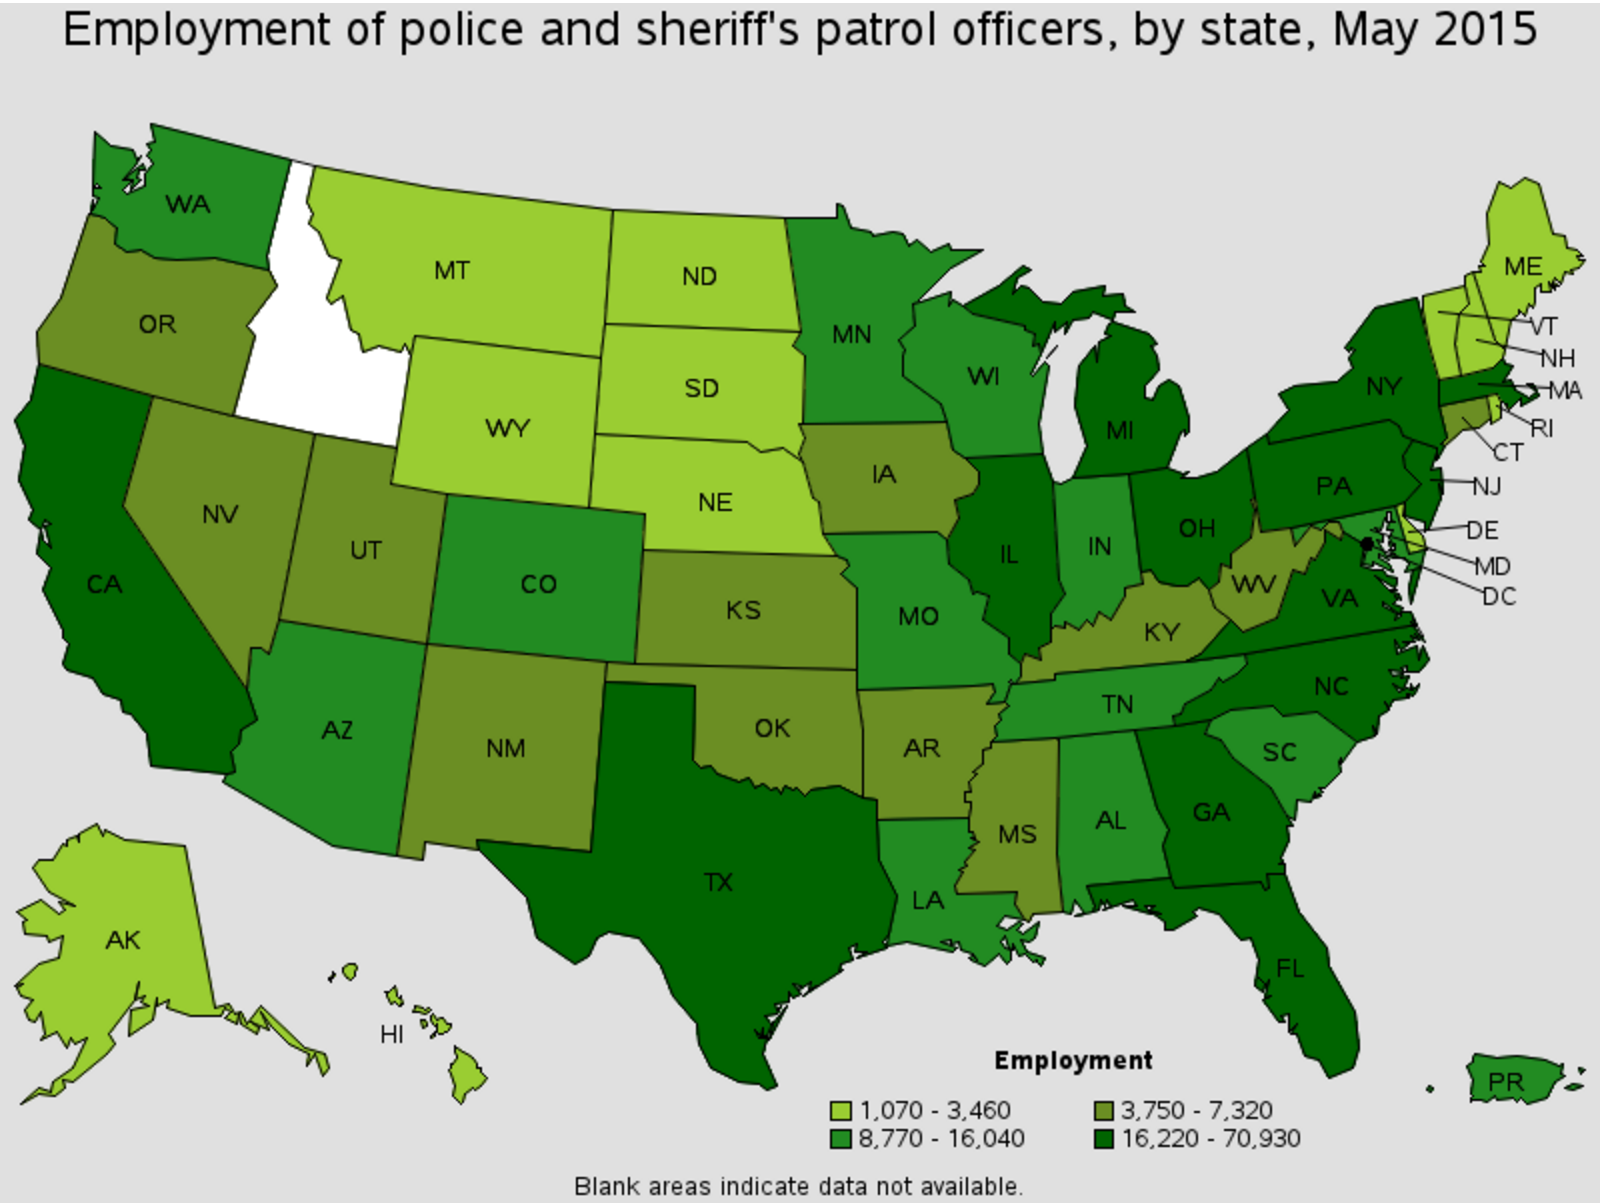 Downey police officer career outlook by state